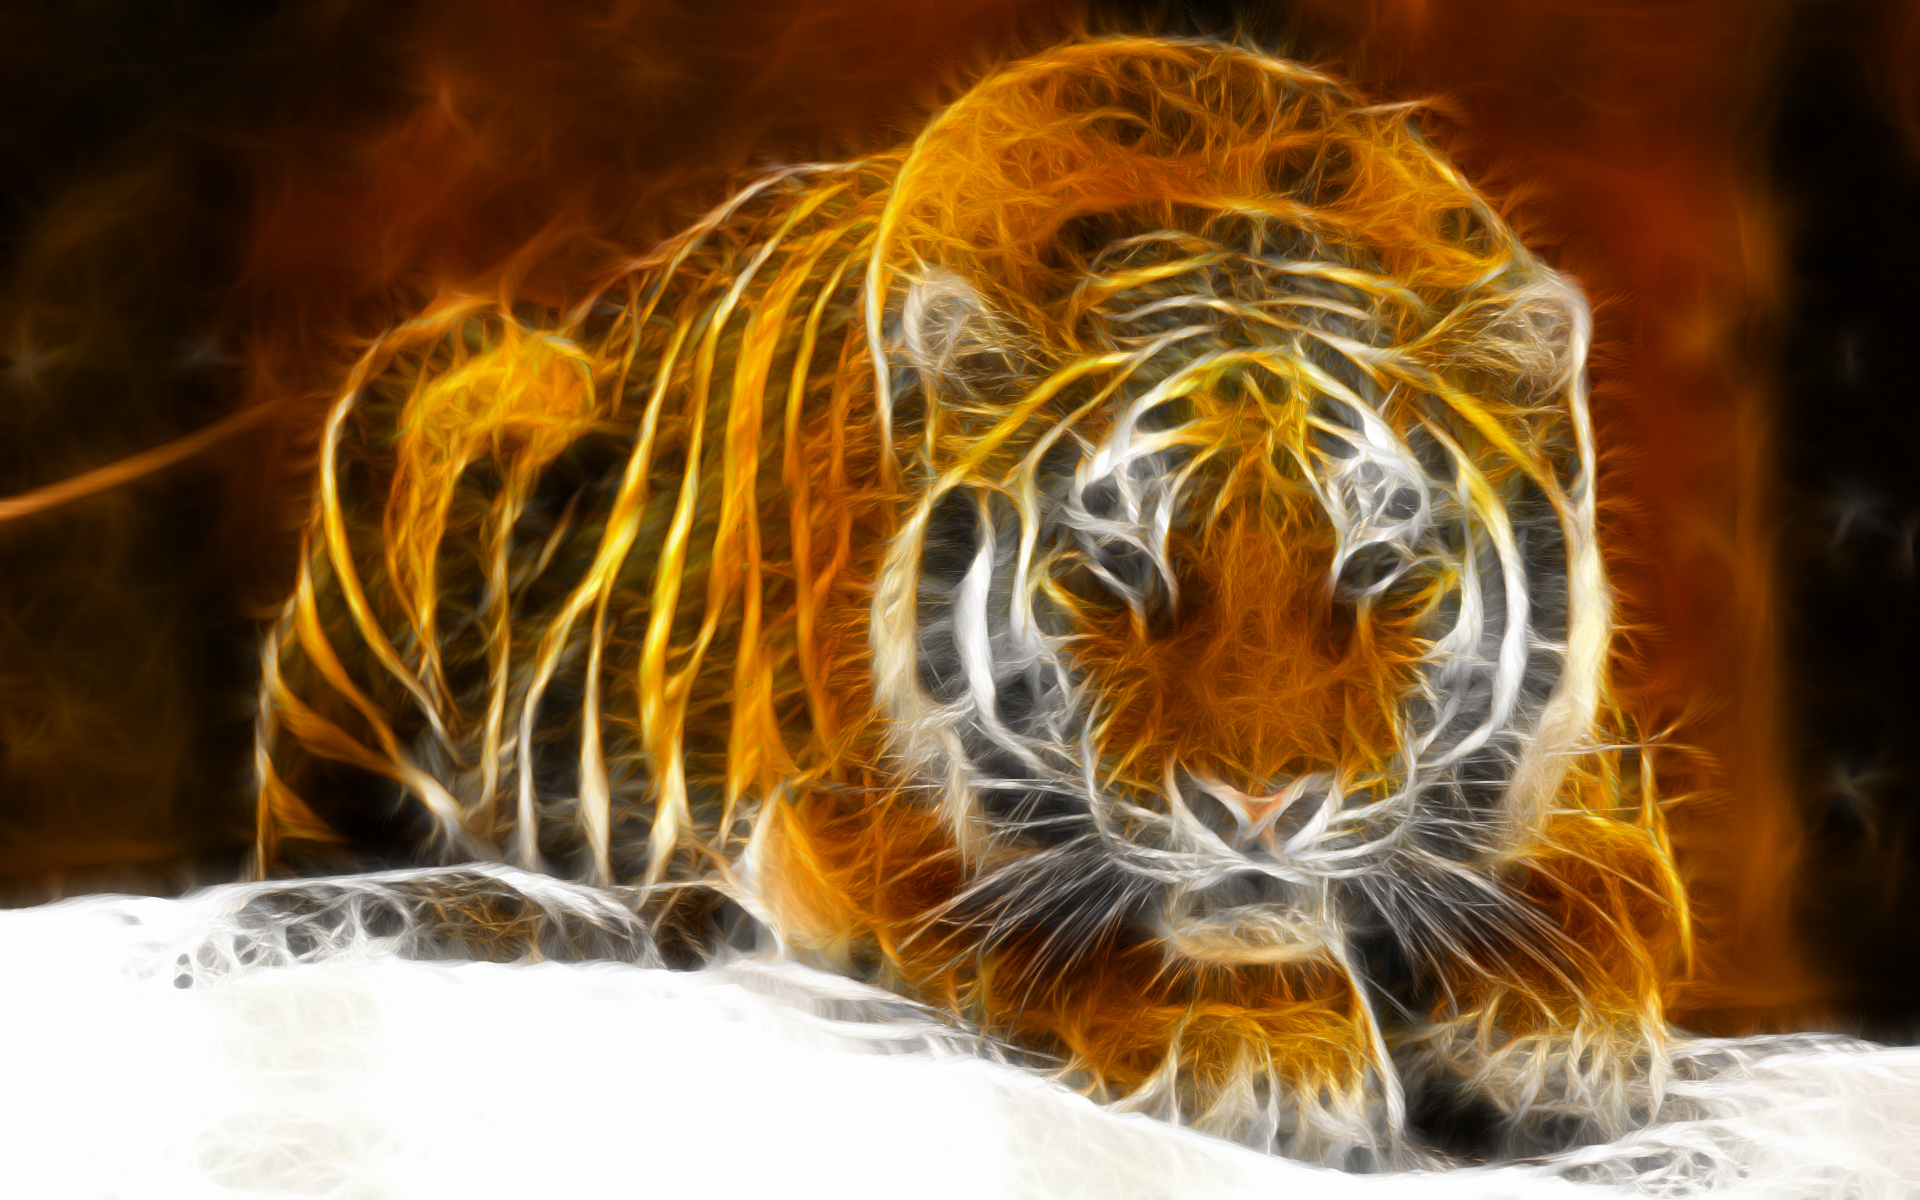 Windows 7 digital tiger full hd wallpaper and background image animal artistic tiger cat orange animal digital art windows wallpaper altavistaventures Choice Image